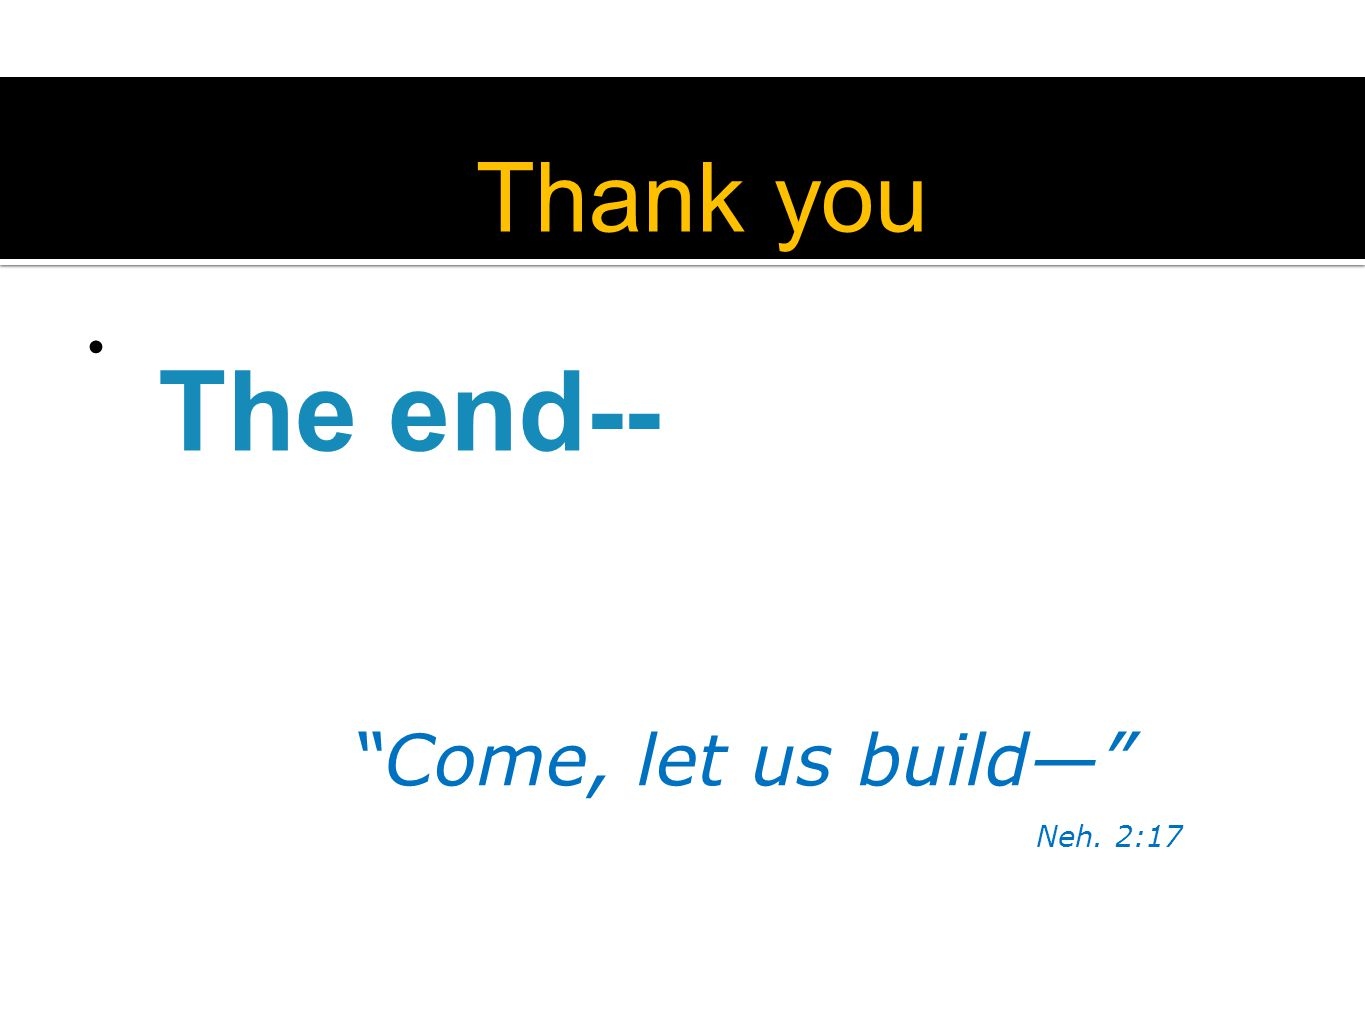 The end-- Come, let us build— Neh. 2:17 Thank you